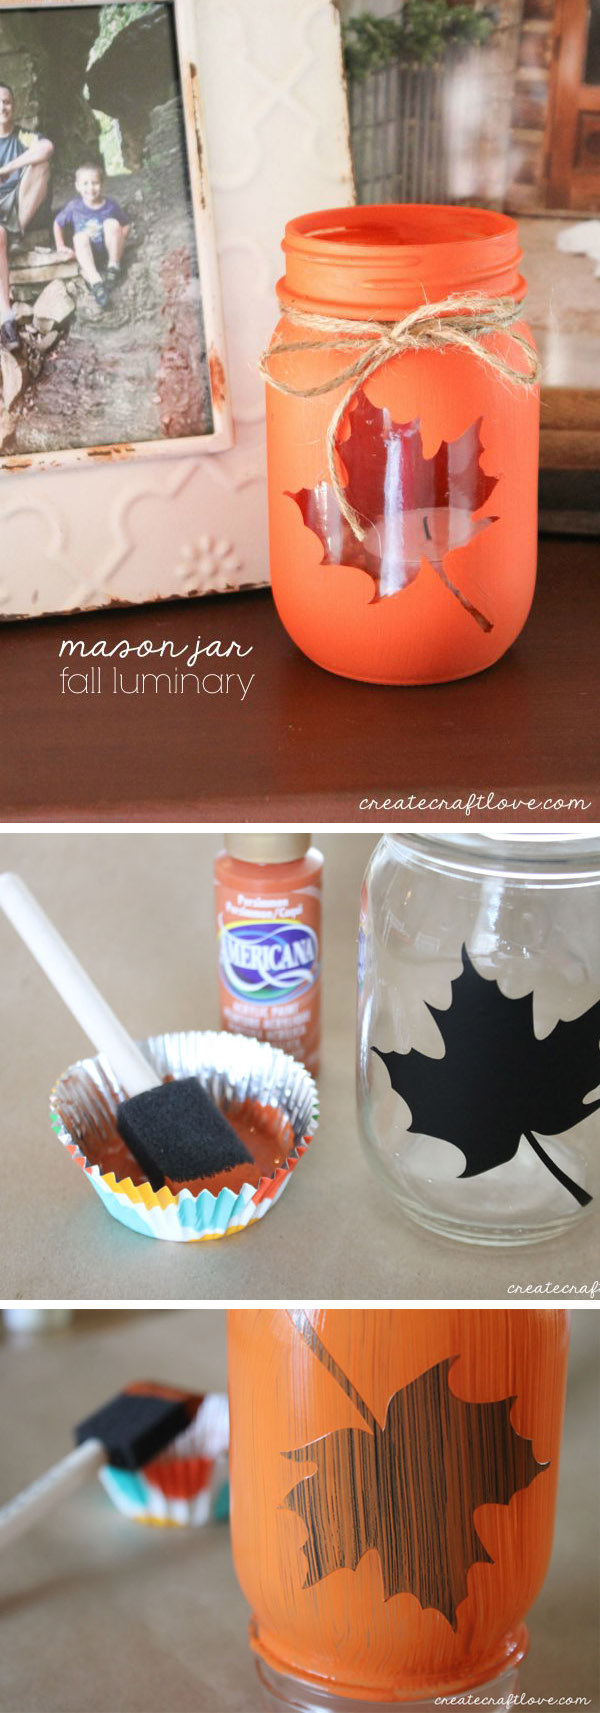 Mason Jar Fall Luminary.